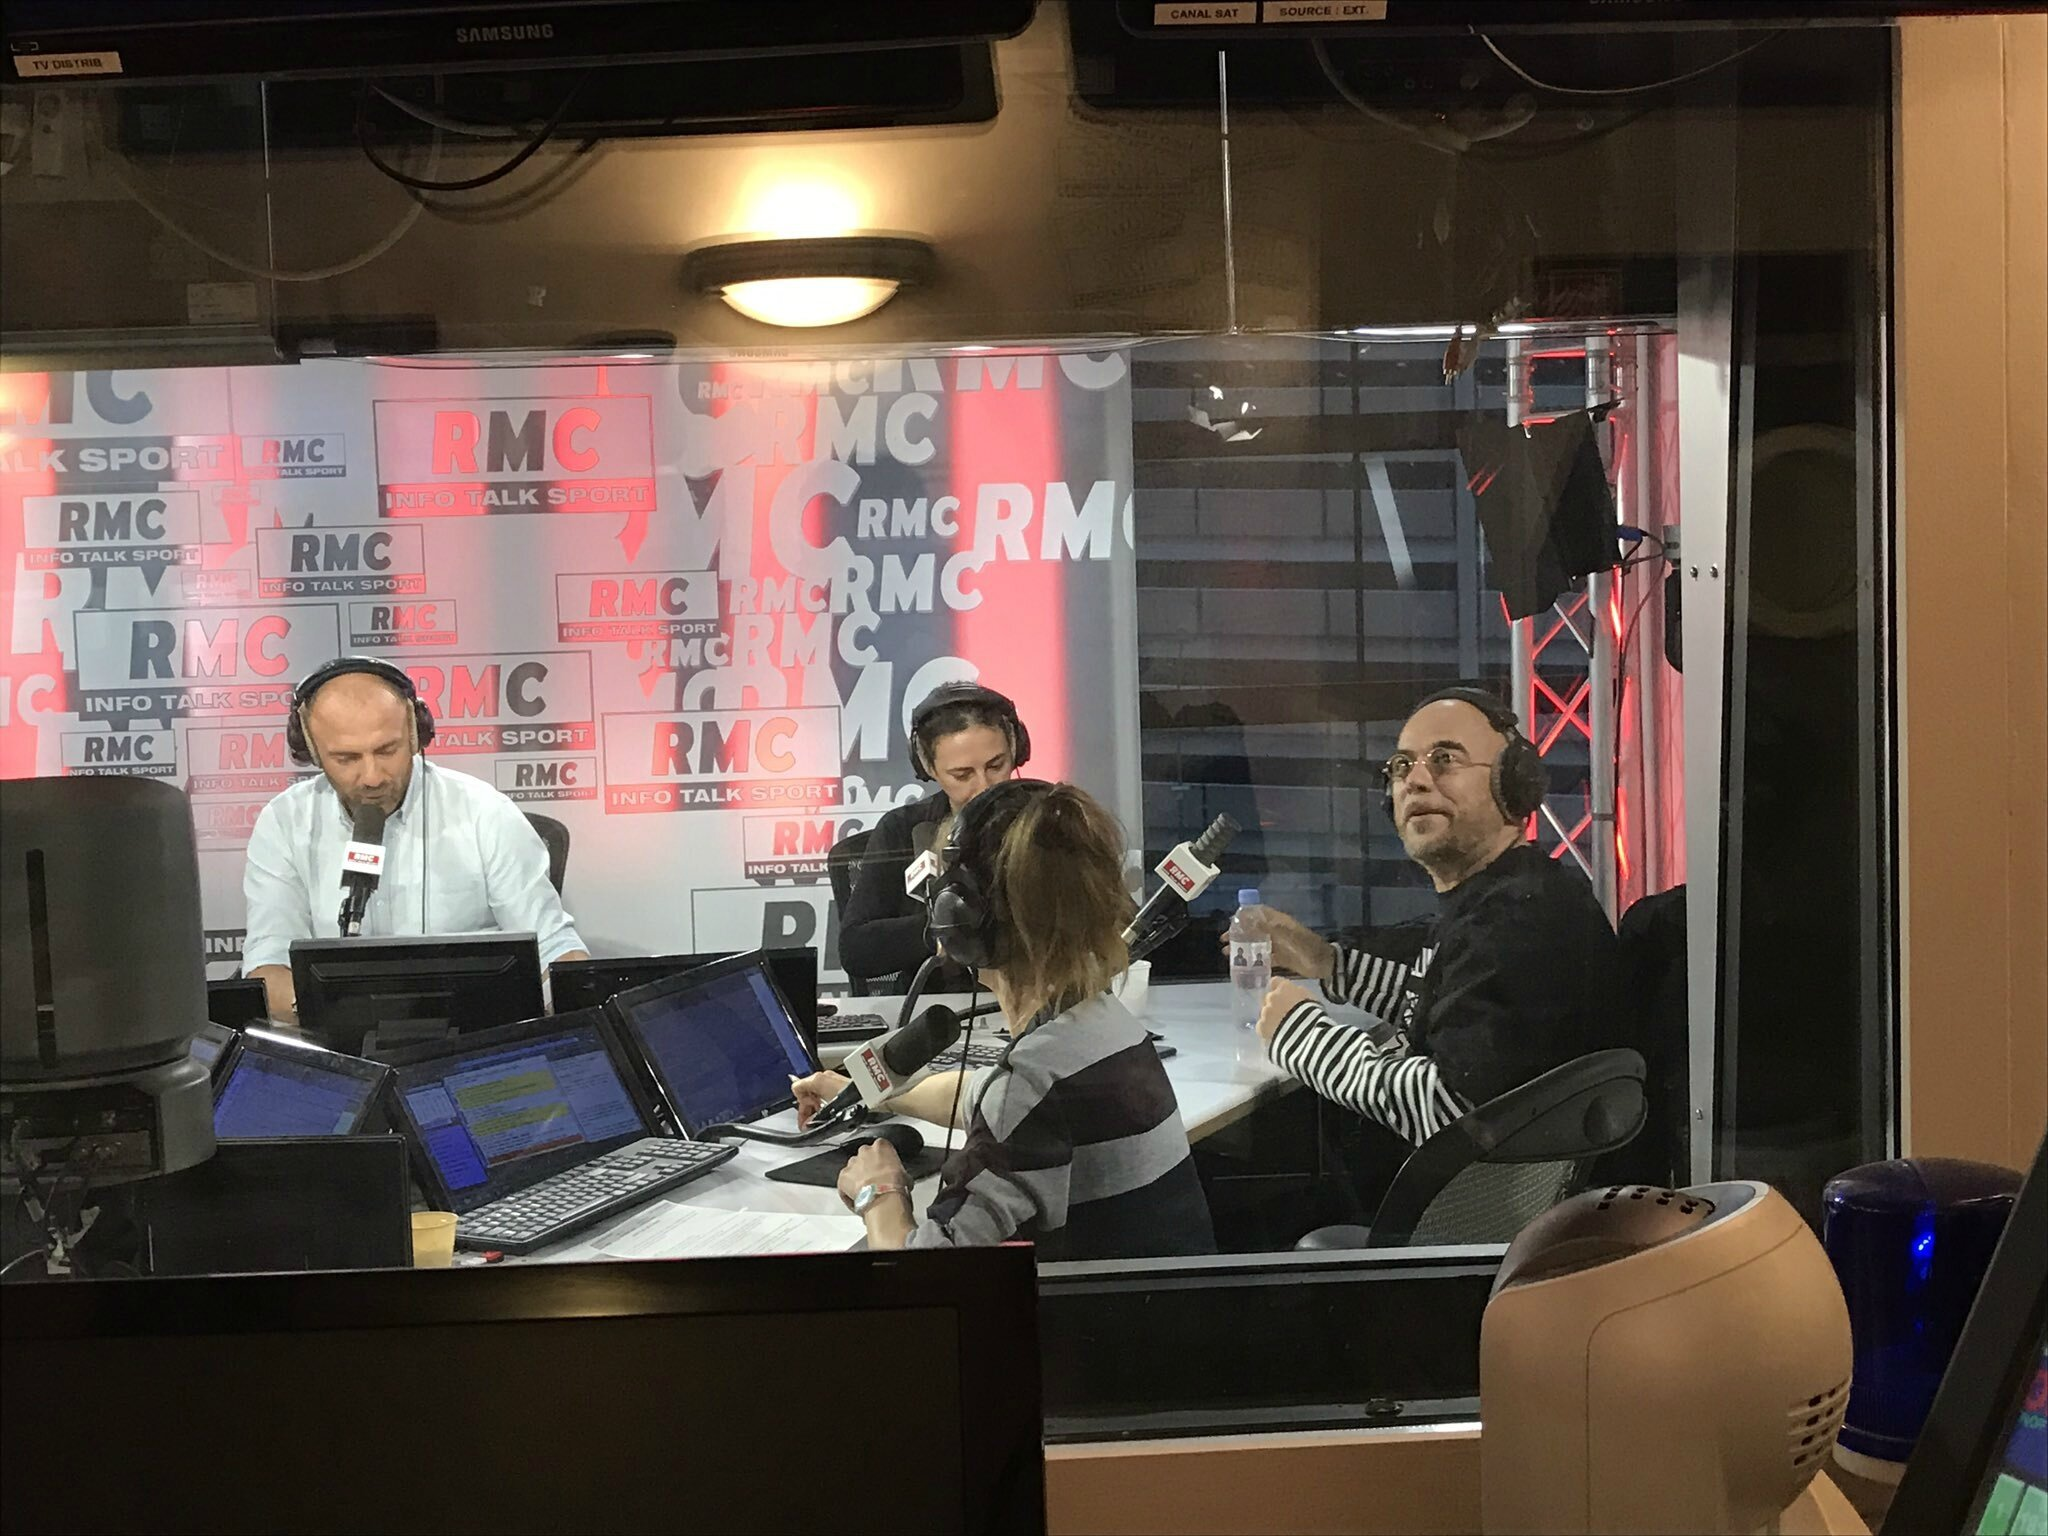 [PODCAST] Pascal Obispo invité exceptionnel de Team Duga sur RMC Sports